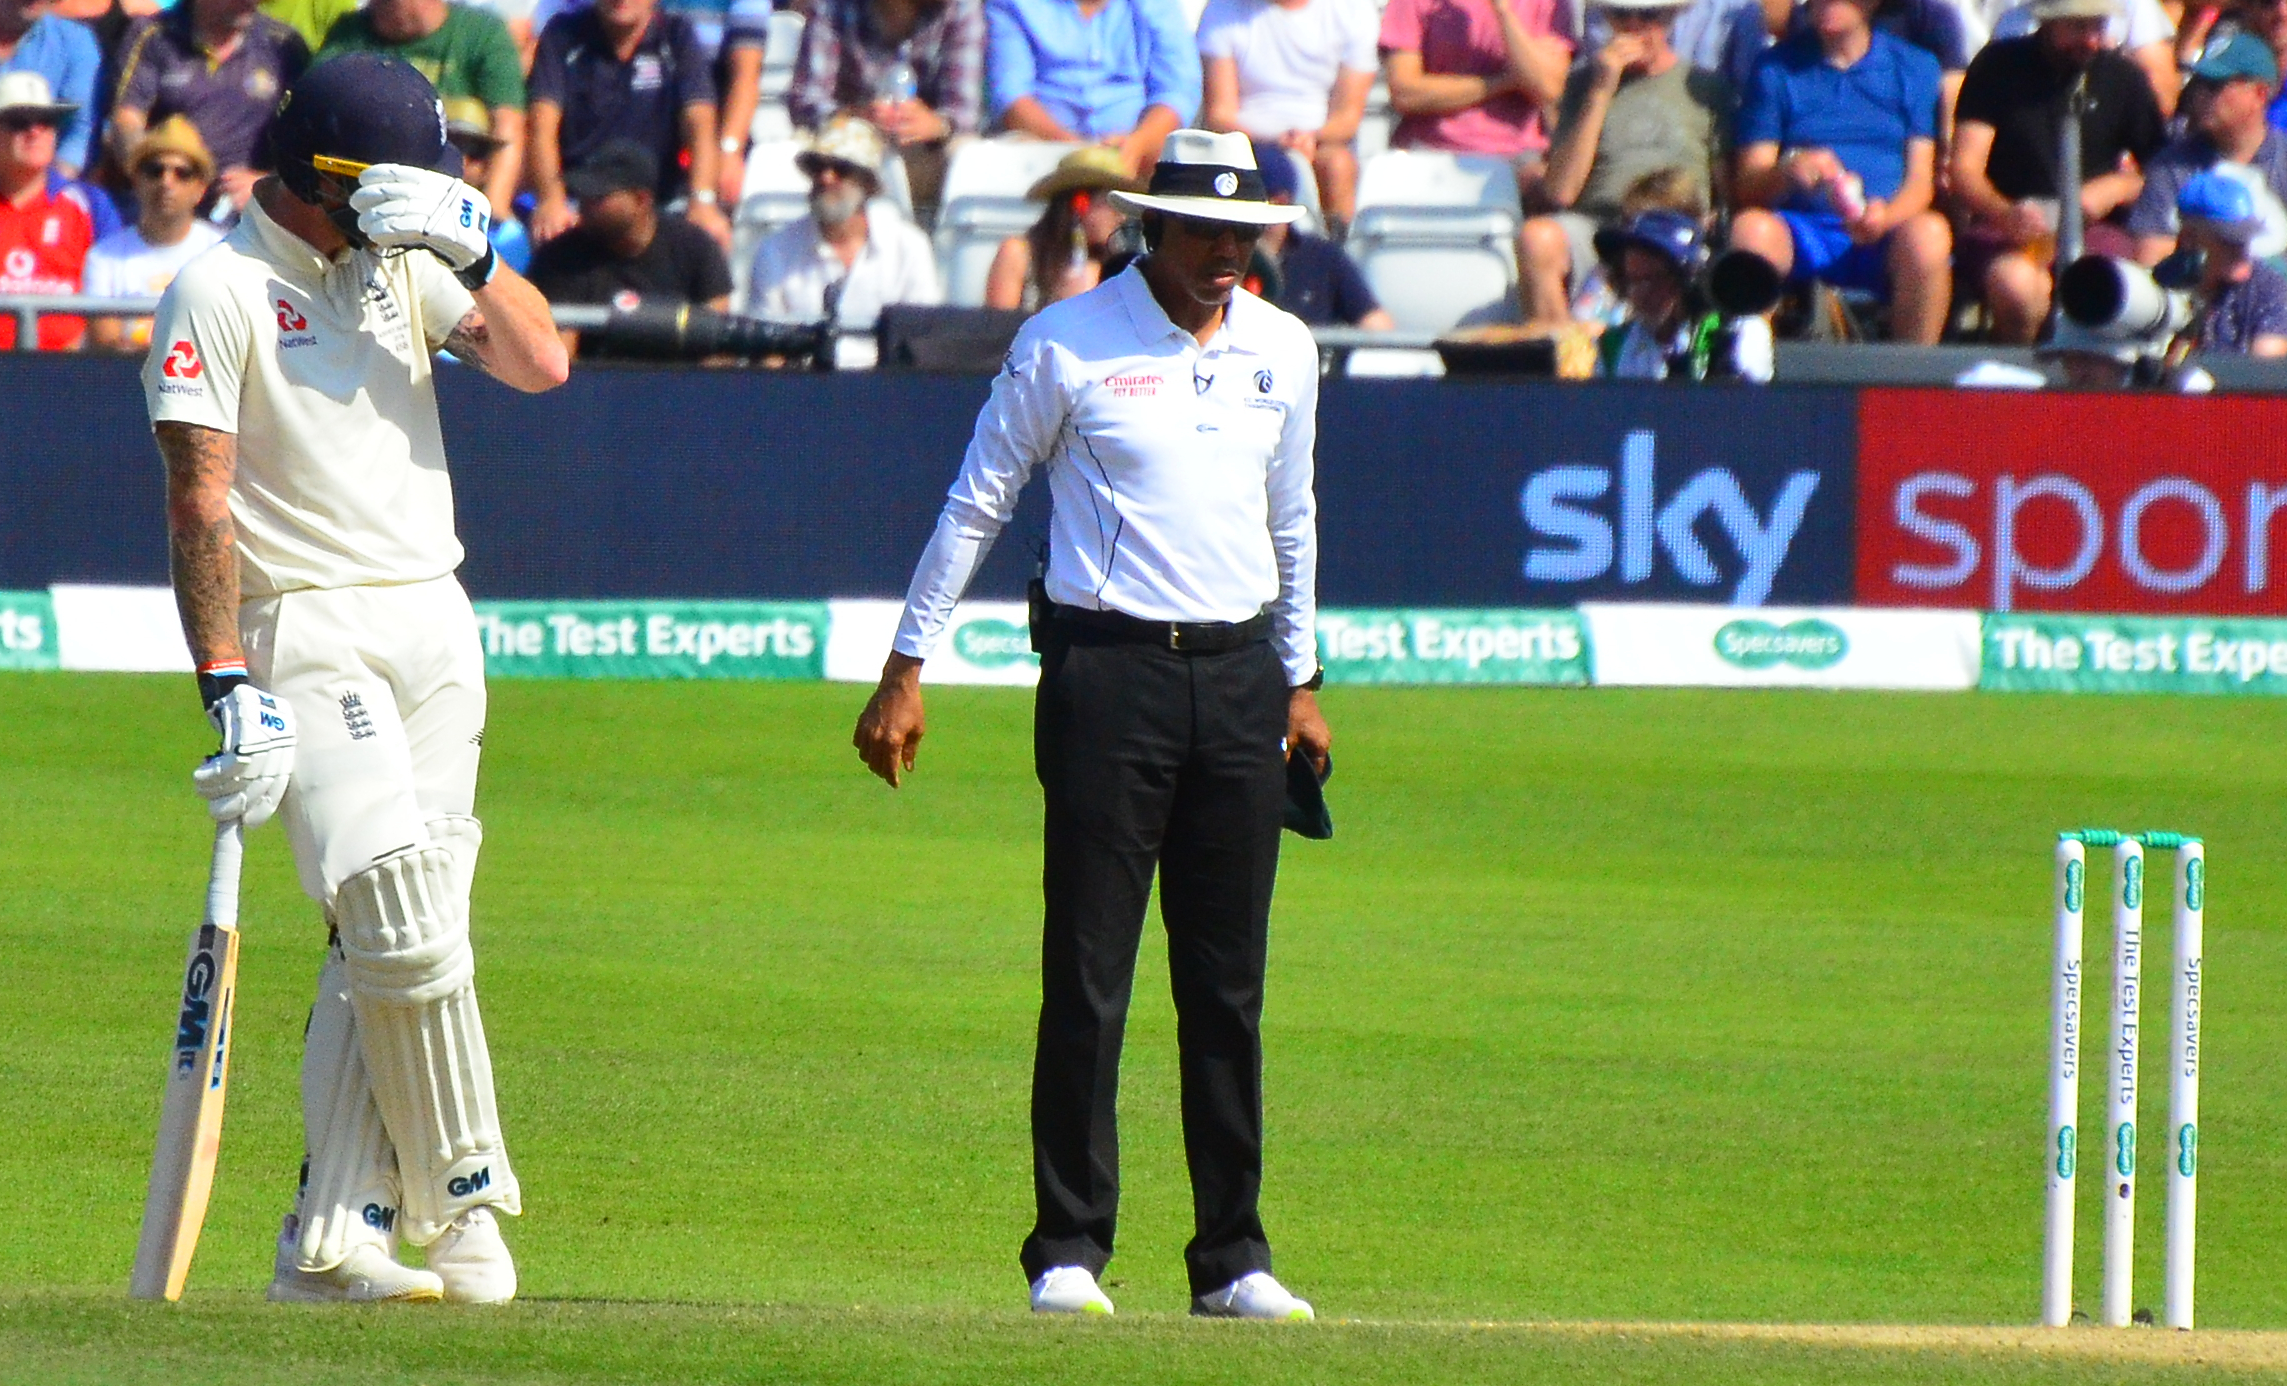 Odds On England In South Africa, South African gambling laws, Bet on sports in South Africa, Online sportsbook sites in South Africa, Online betting sites in South Africa, Unibet, 3rd Test Odds, SA vs Eng Series Odds, Ben Stokes, Joe Root, ICC, Port Elizabeth, Cape Town, Flintoff, Botham,